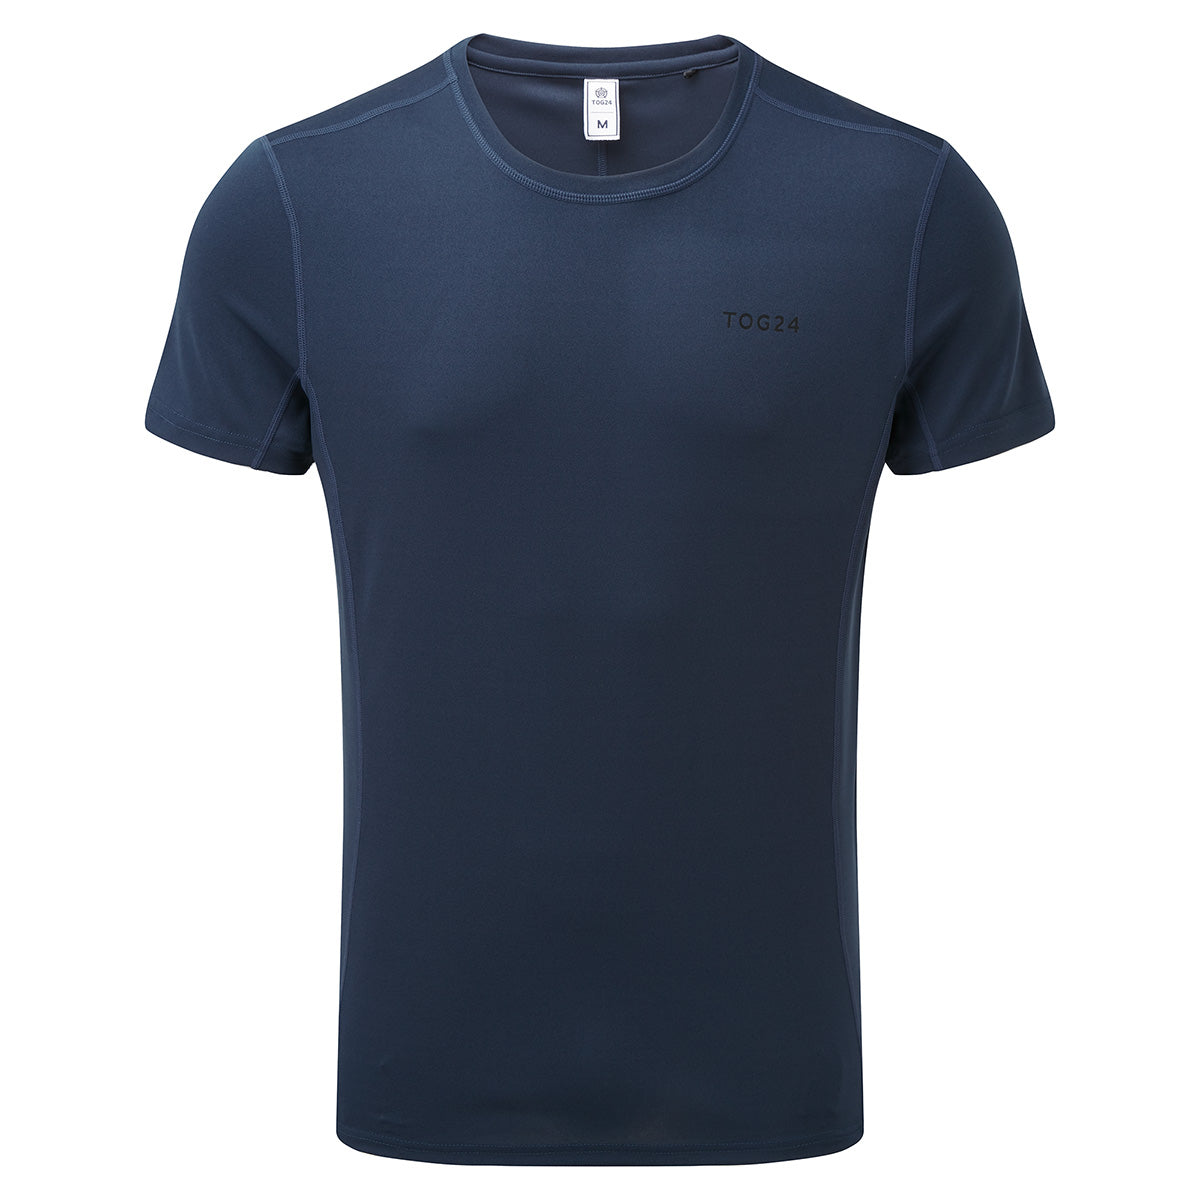 Blevin Mens Performance T-Shirt - Naval Blue image 4